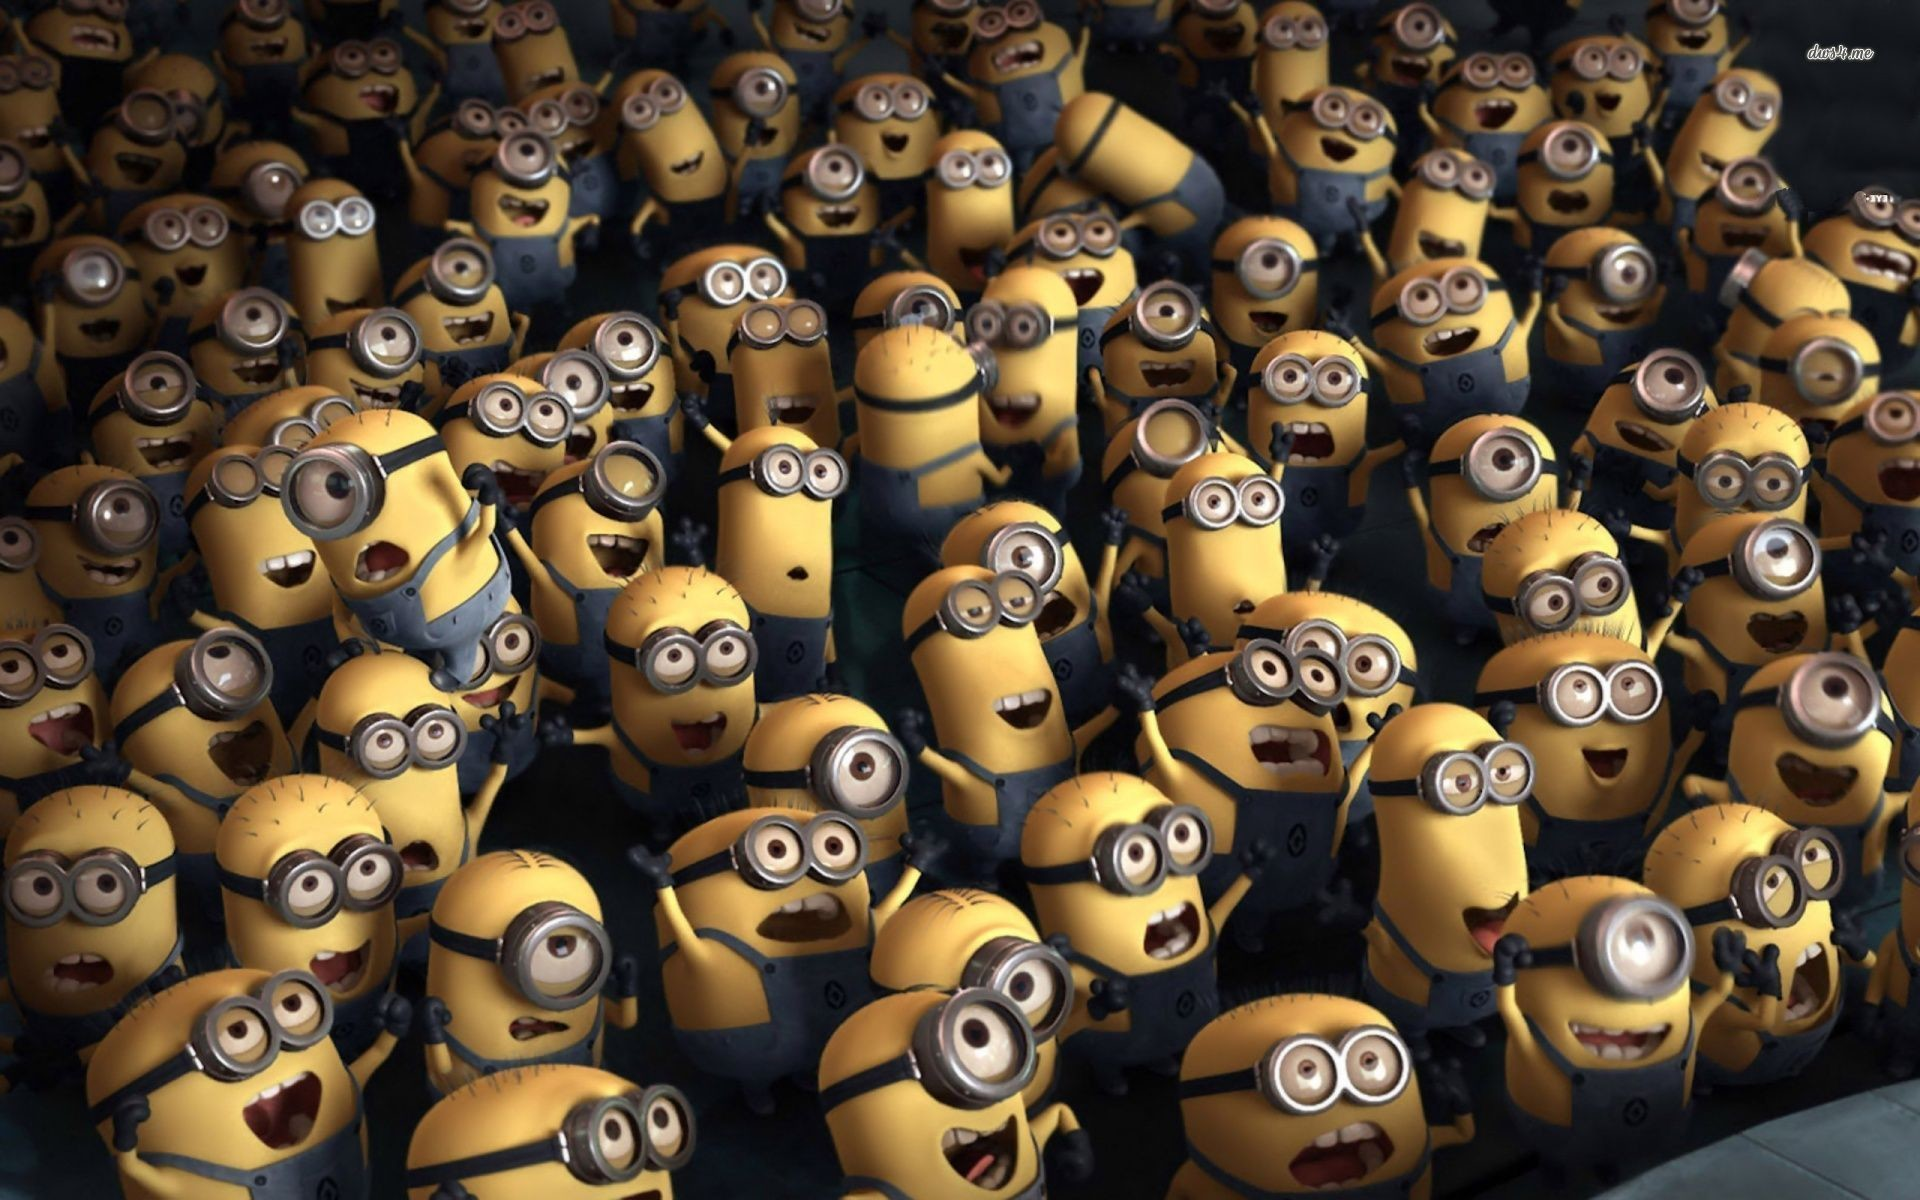 Crowd of Minions – Despicable me 2